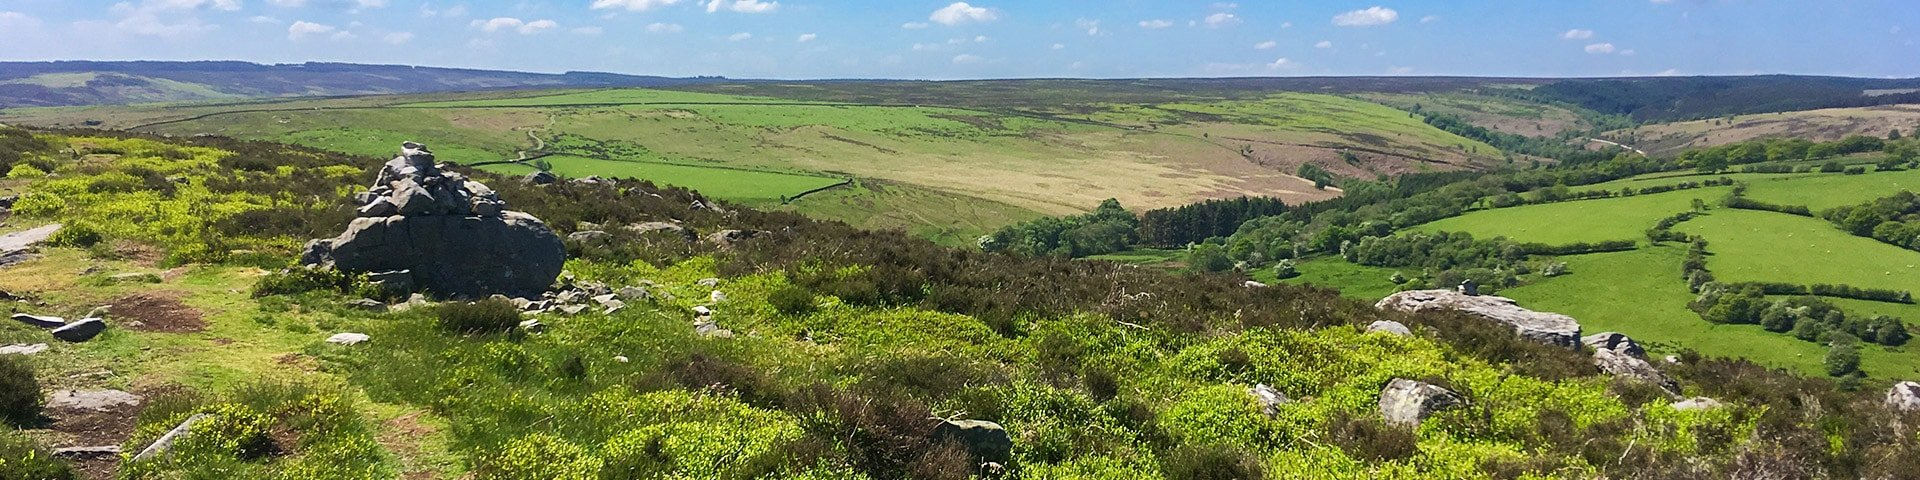 Best hikes in North York Moors, England